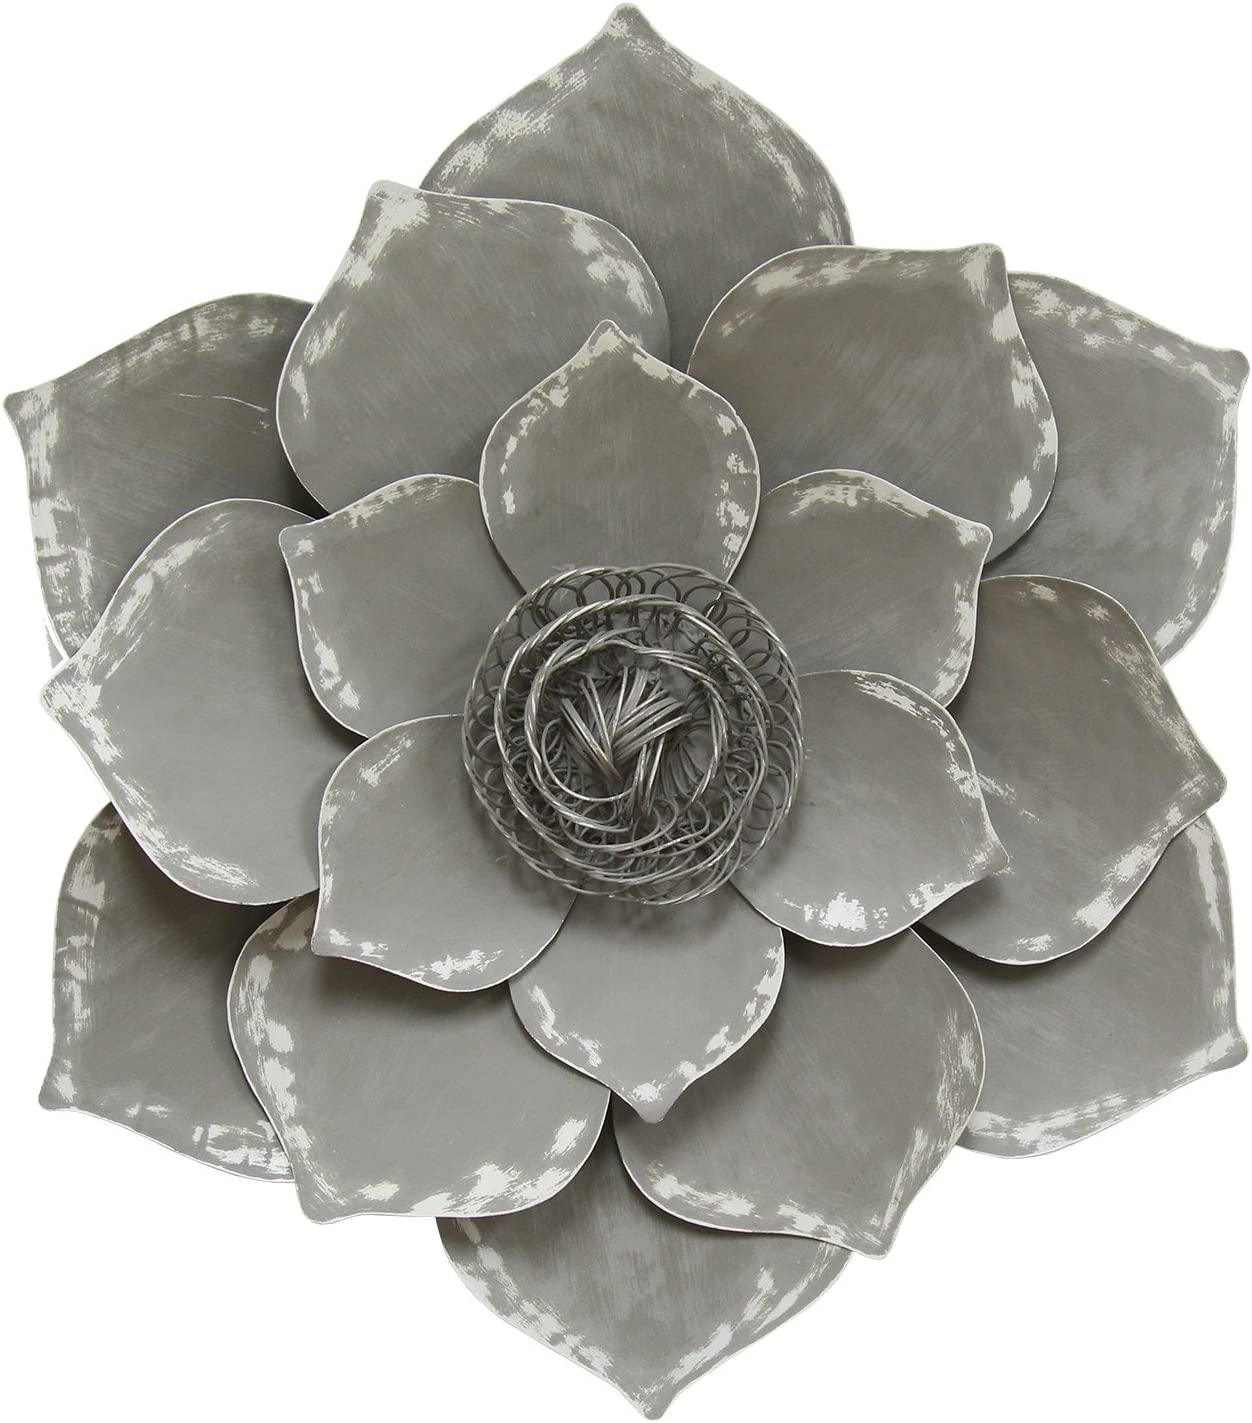 Amazon Com Stratton Home Decor S07656 Lotus Wall Decor 19 69 W X 2 56 D X 19 69 H Grey Home Kitchen